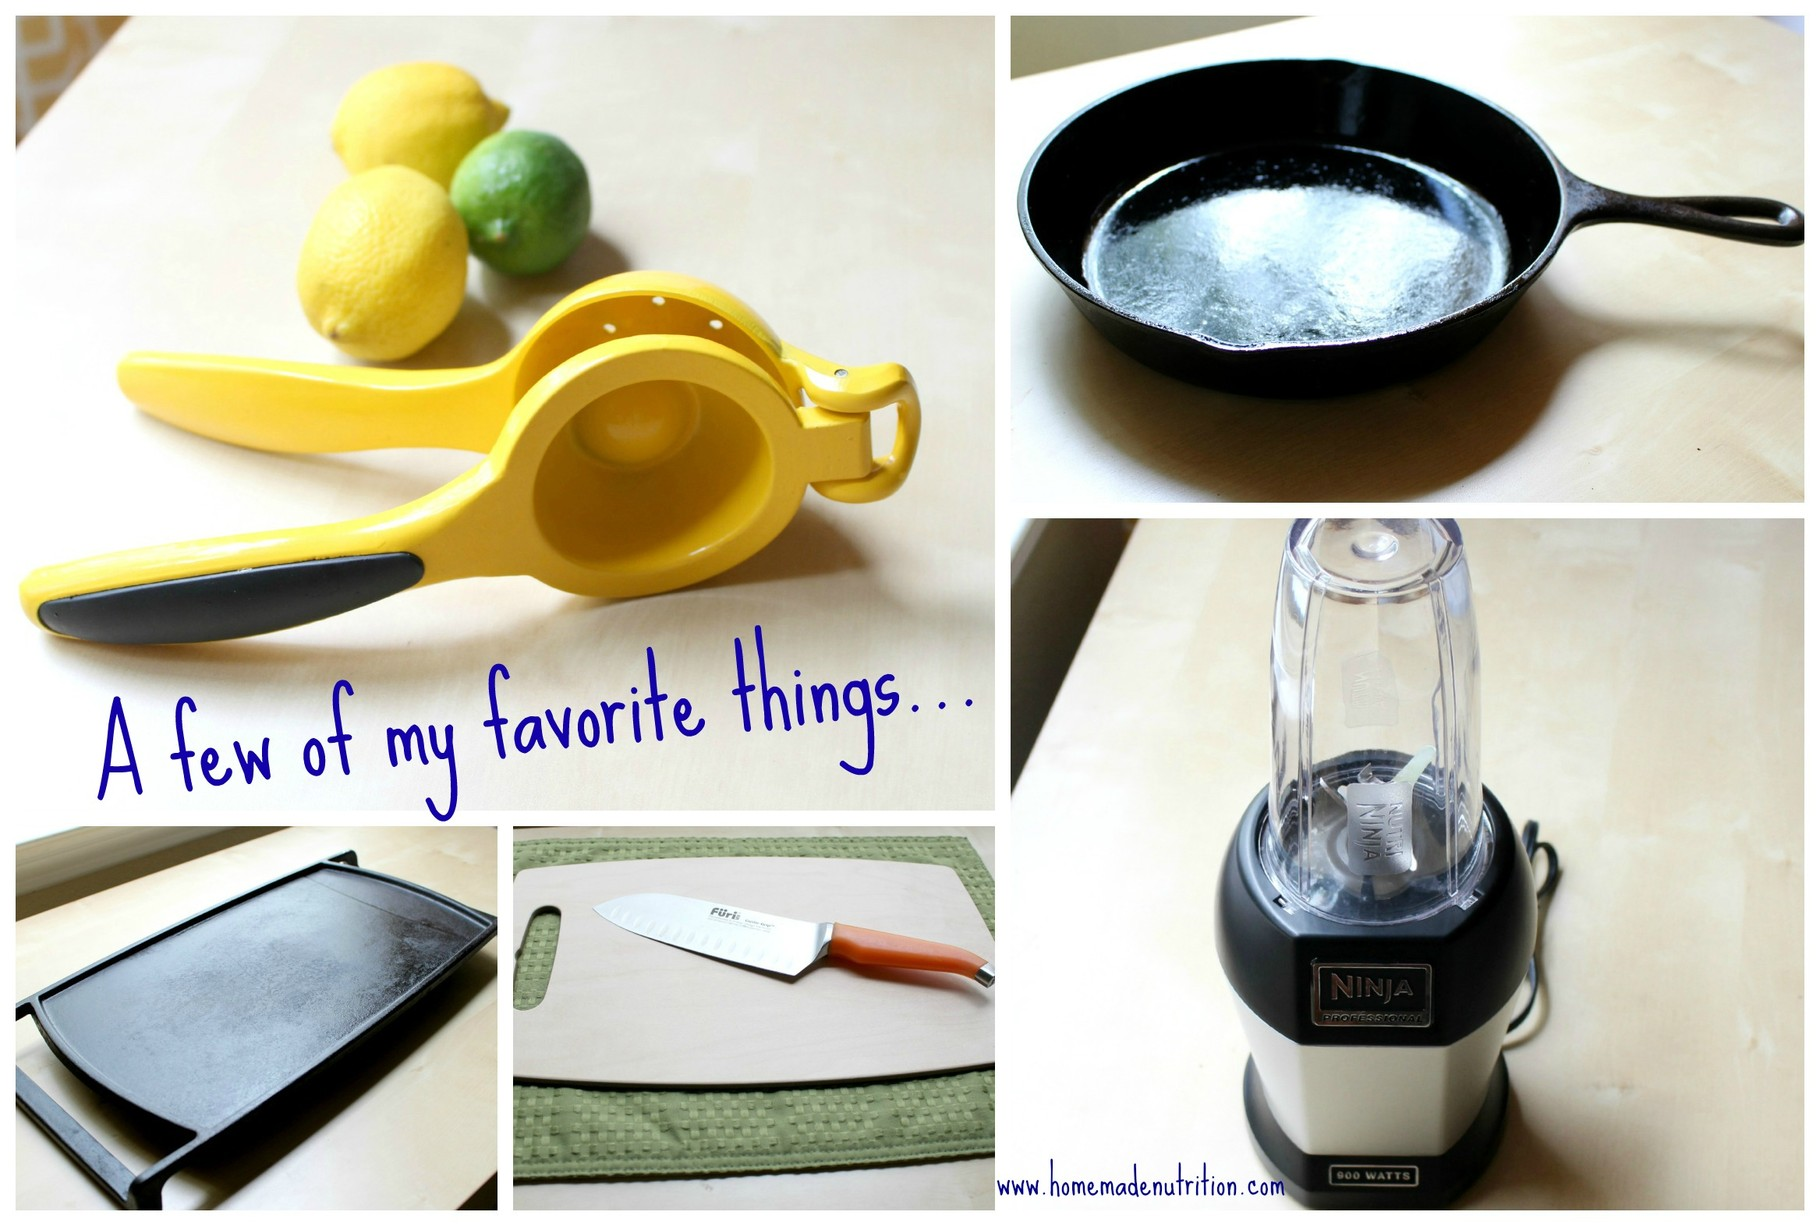 Best Kitchen Gadgets 2015 Top 5 Everyday Kitchen Gadgets And Tools Homemade